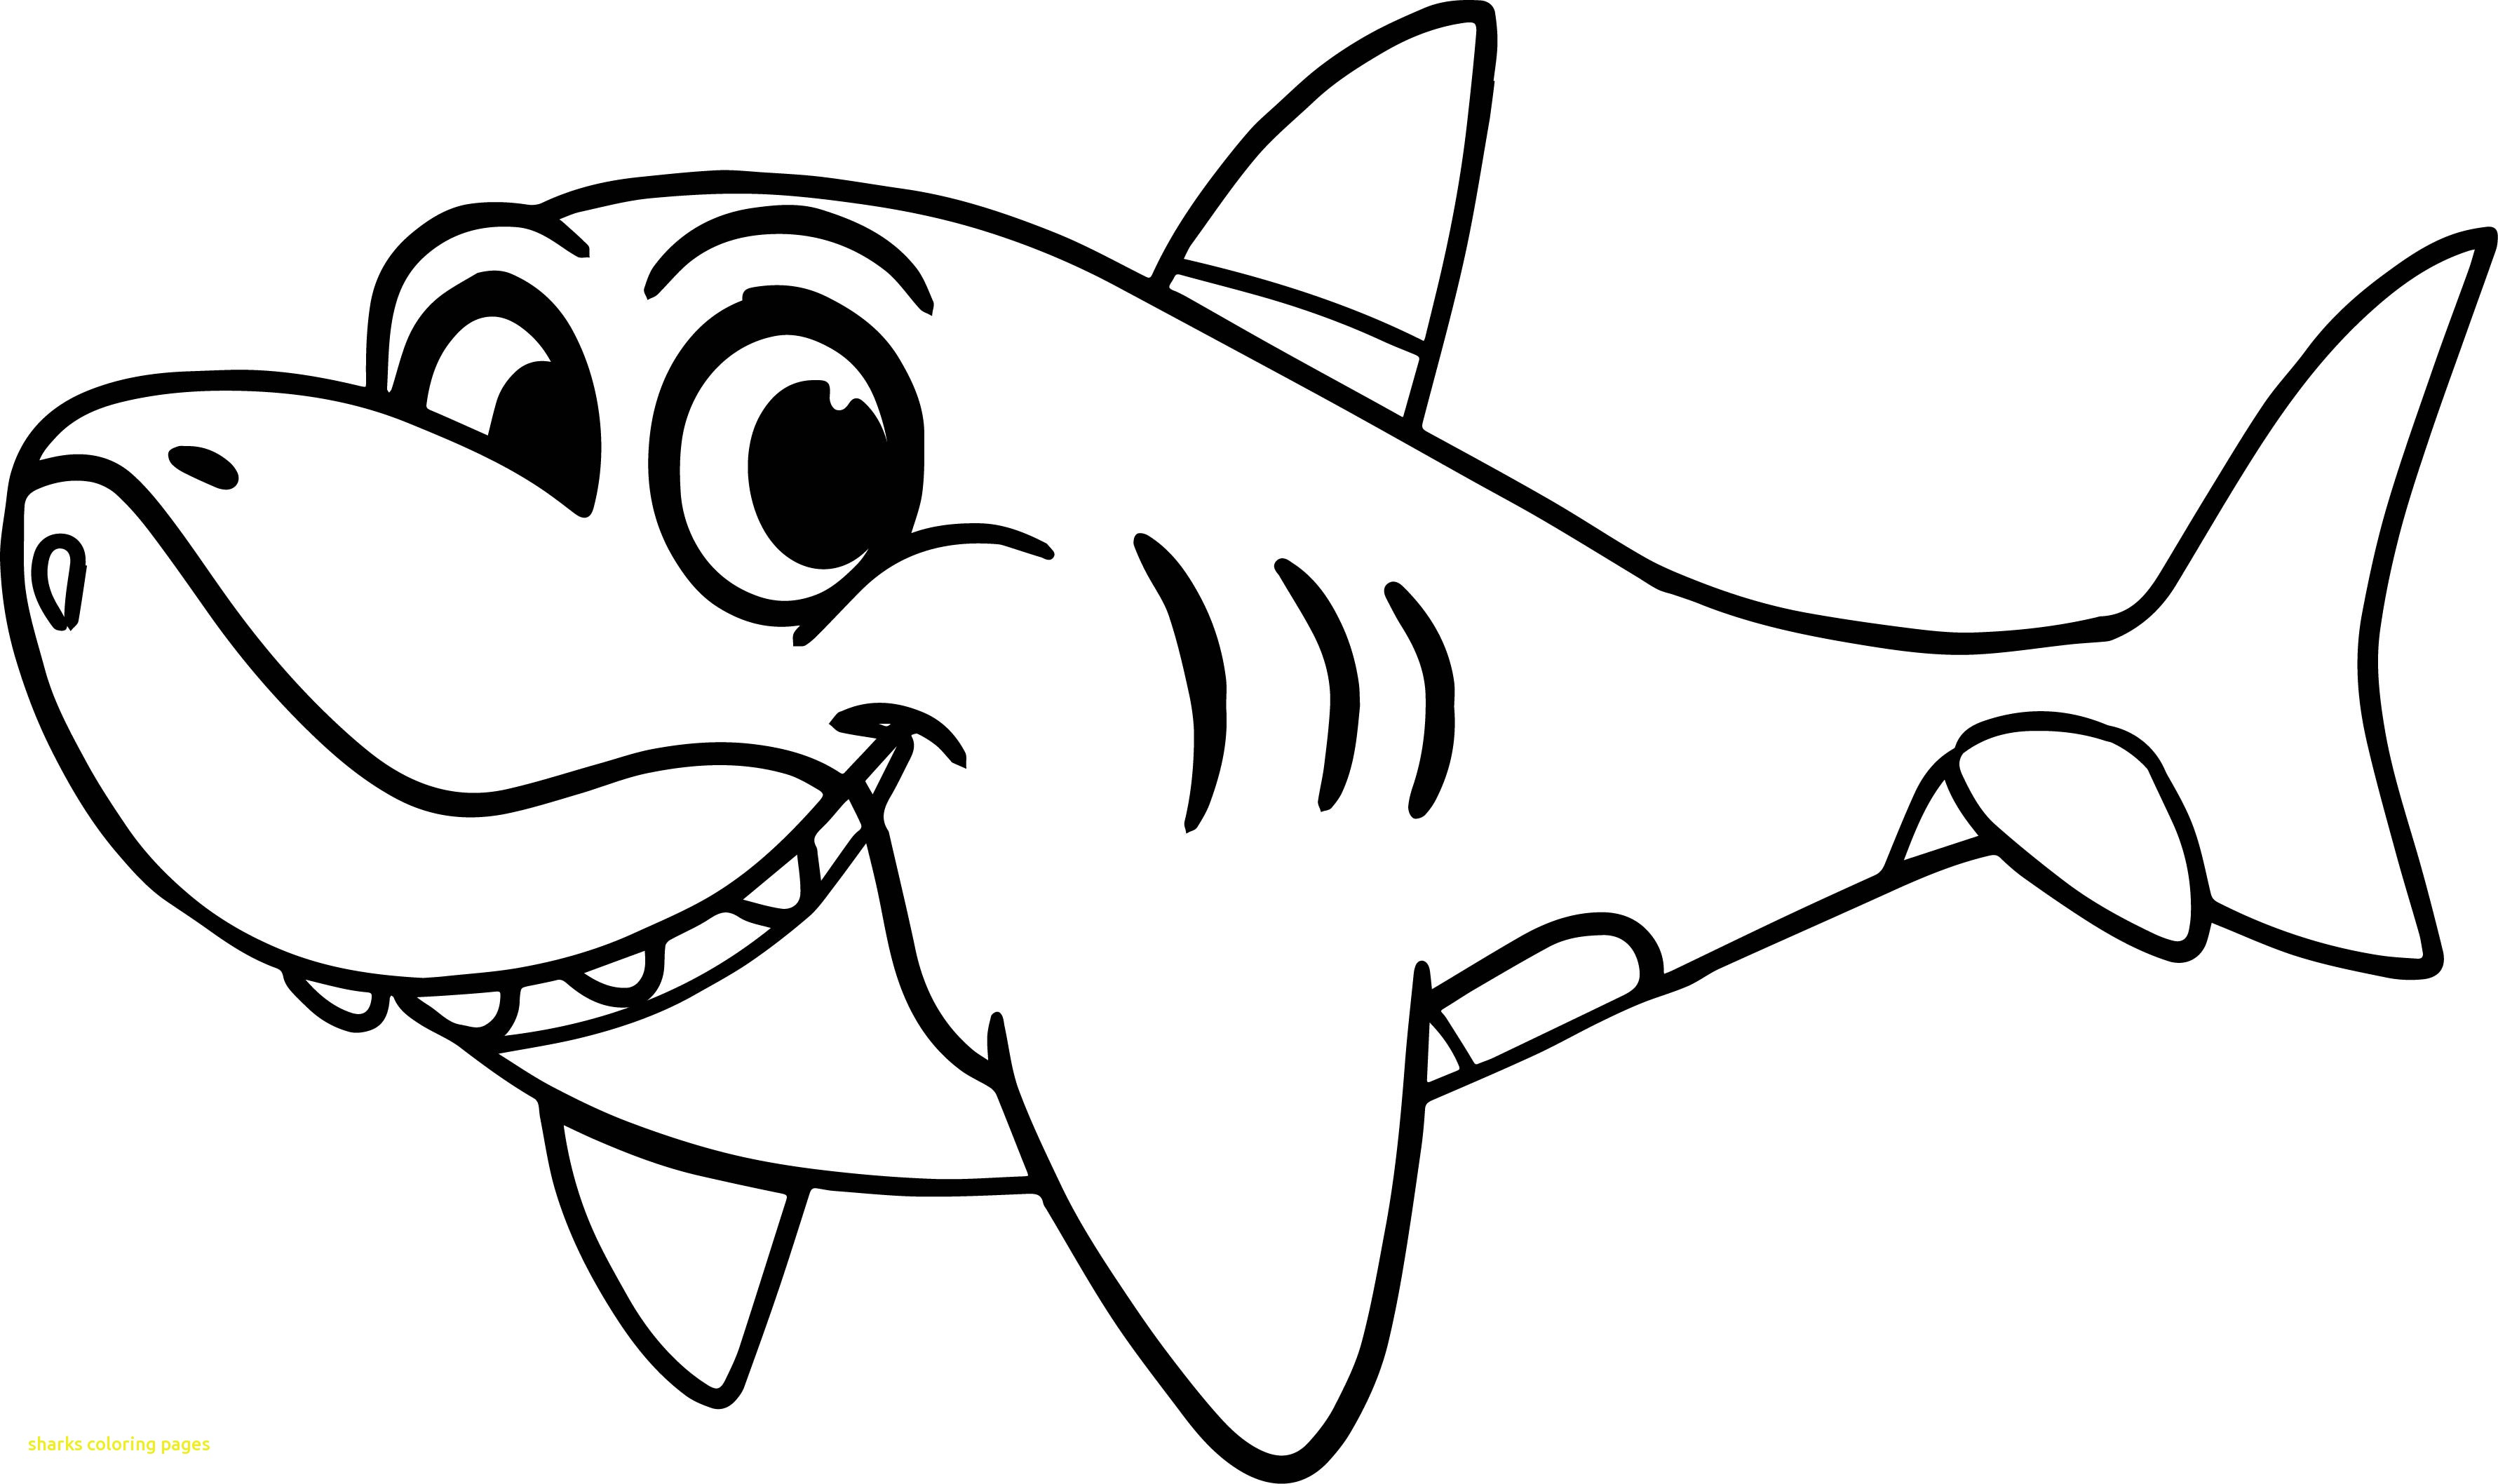 Funny Shark Drawing At Getdrawings Com Free For Personal